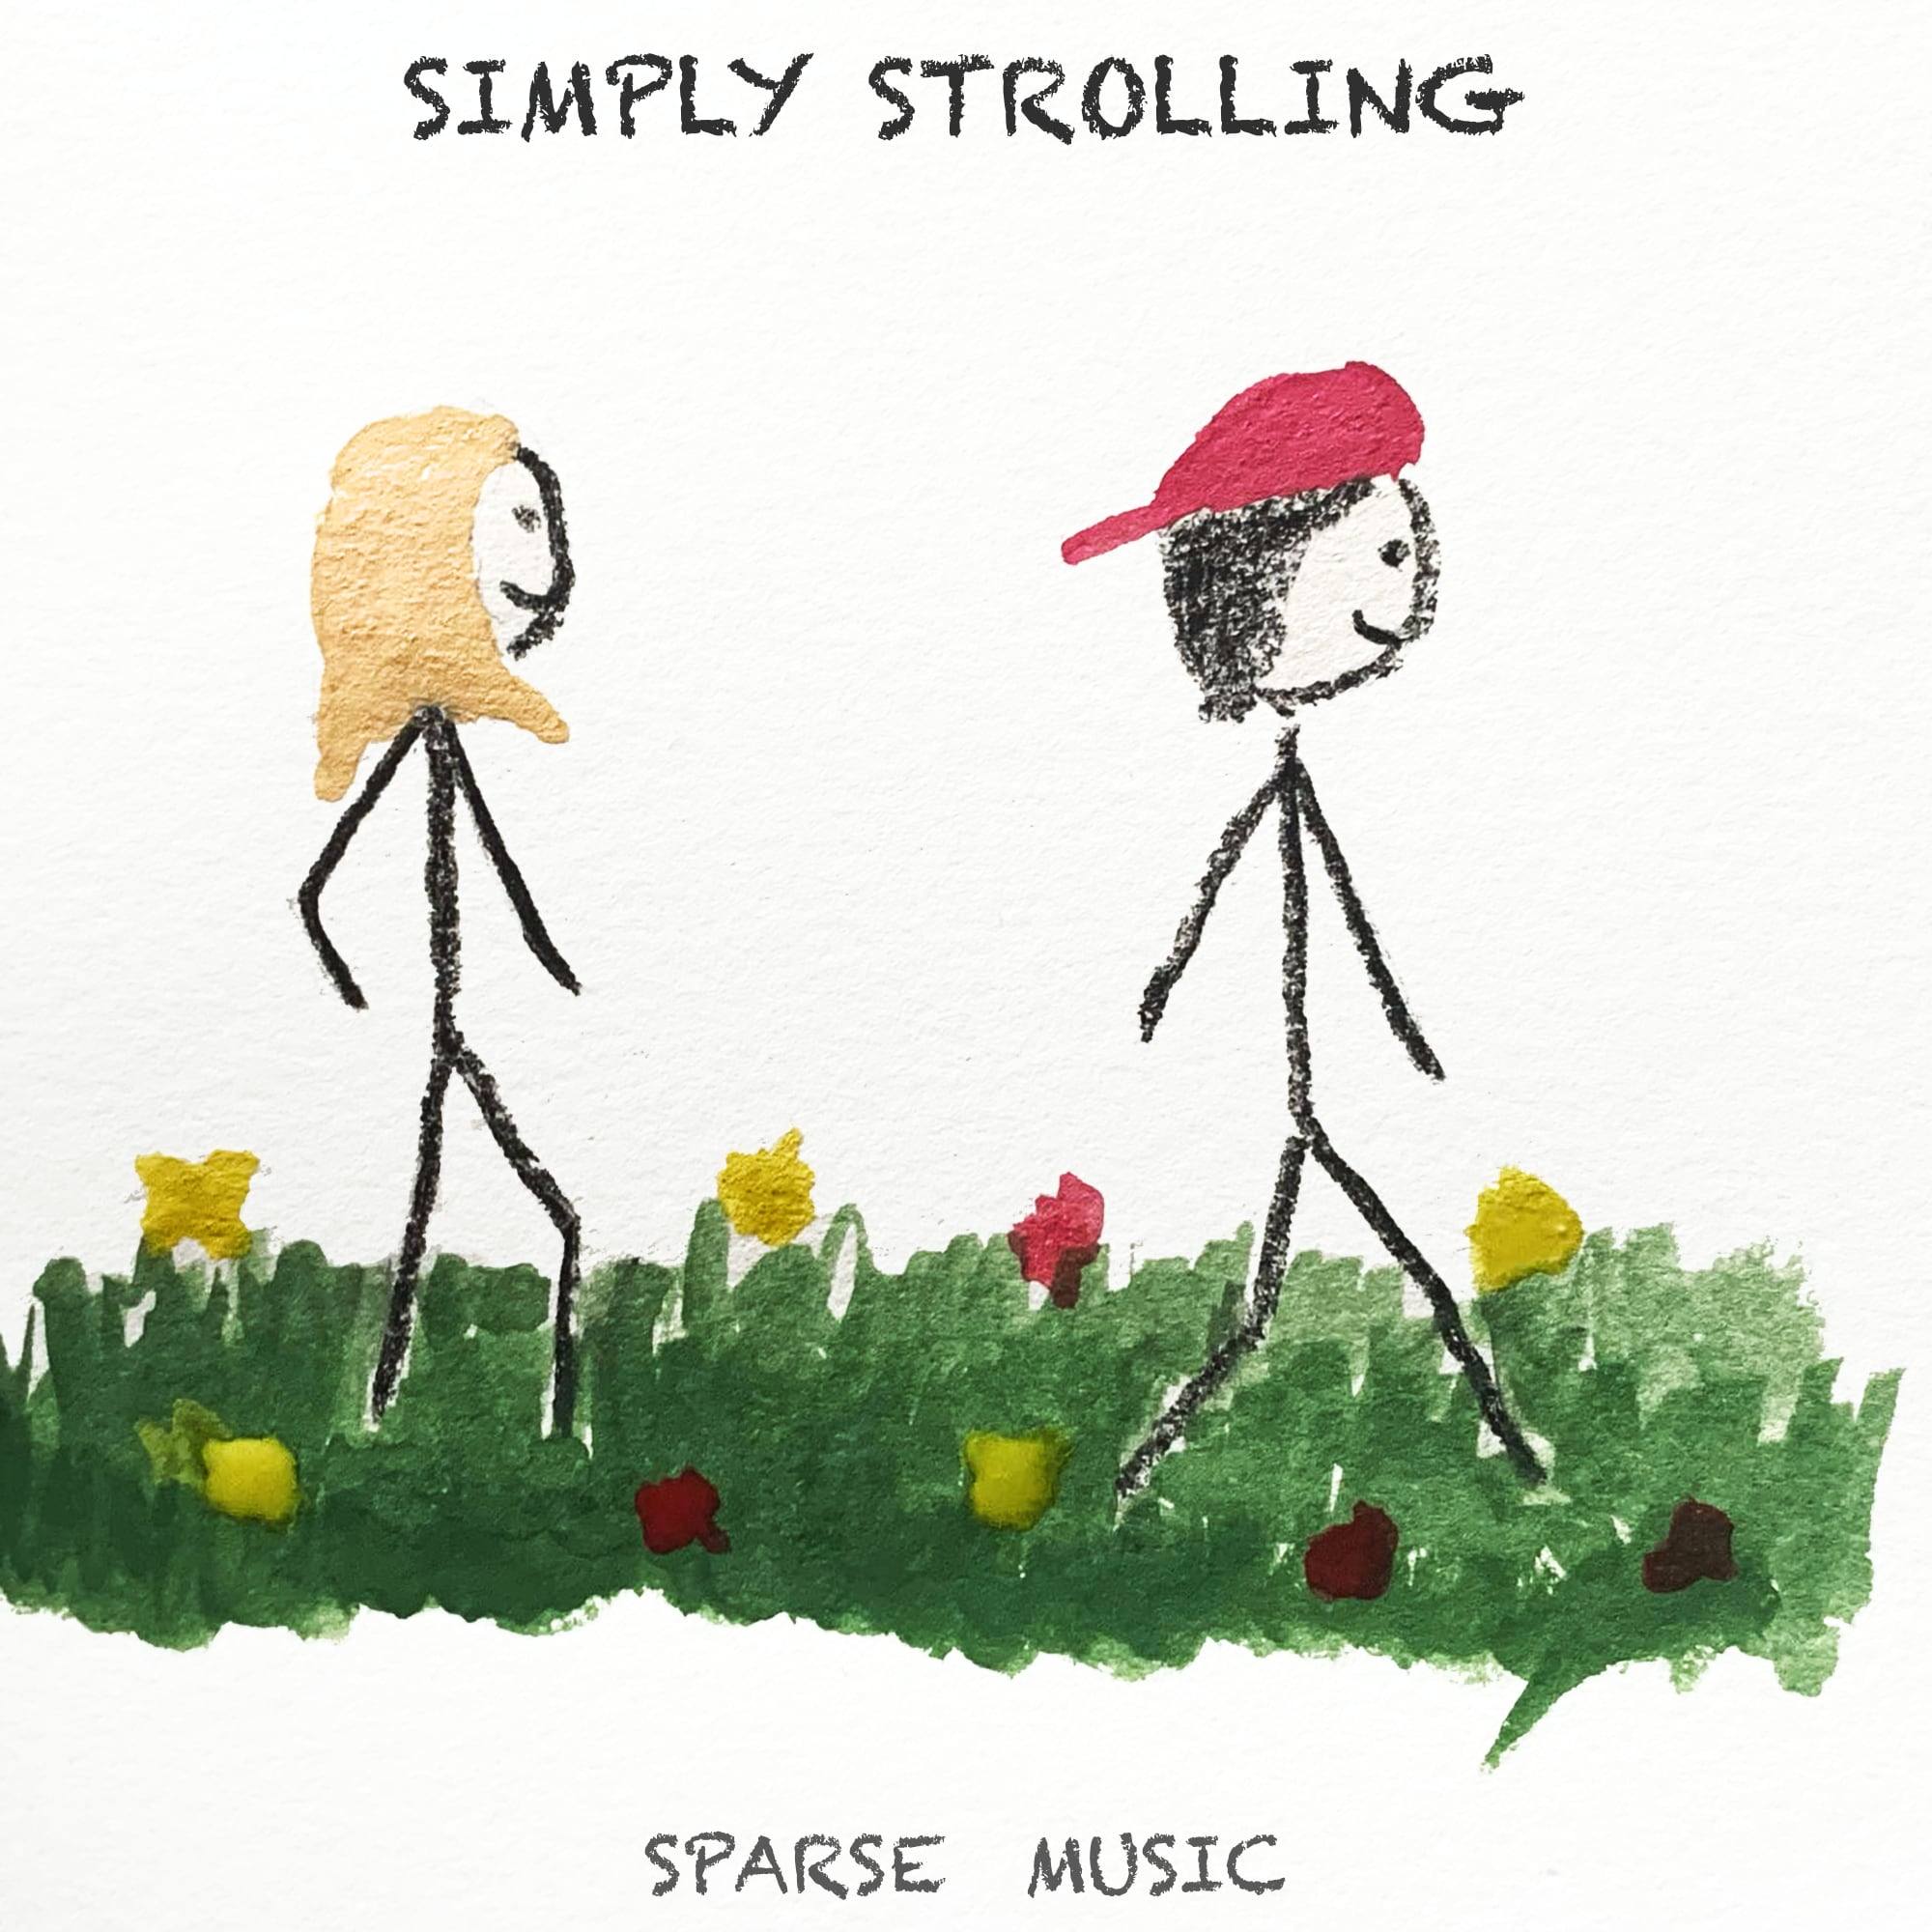 SPRS 01069 SIMPLY STROLLING 2000